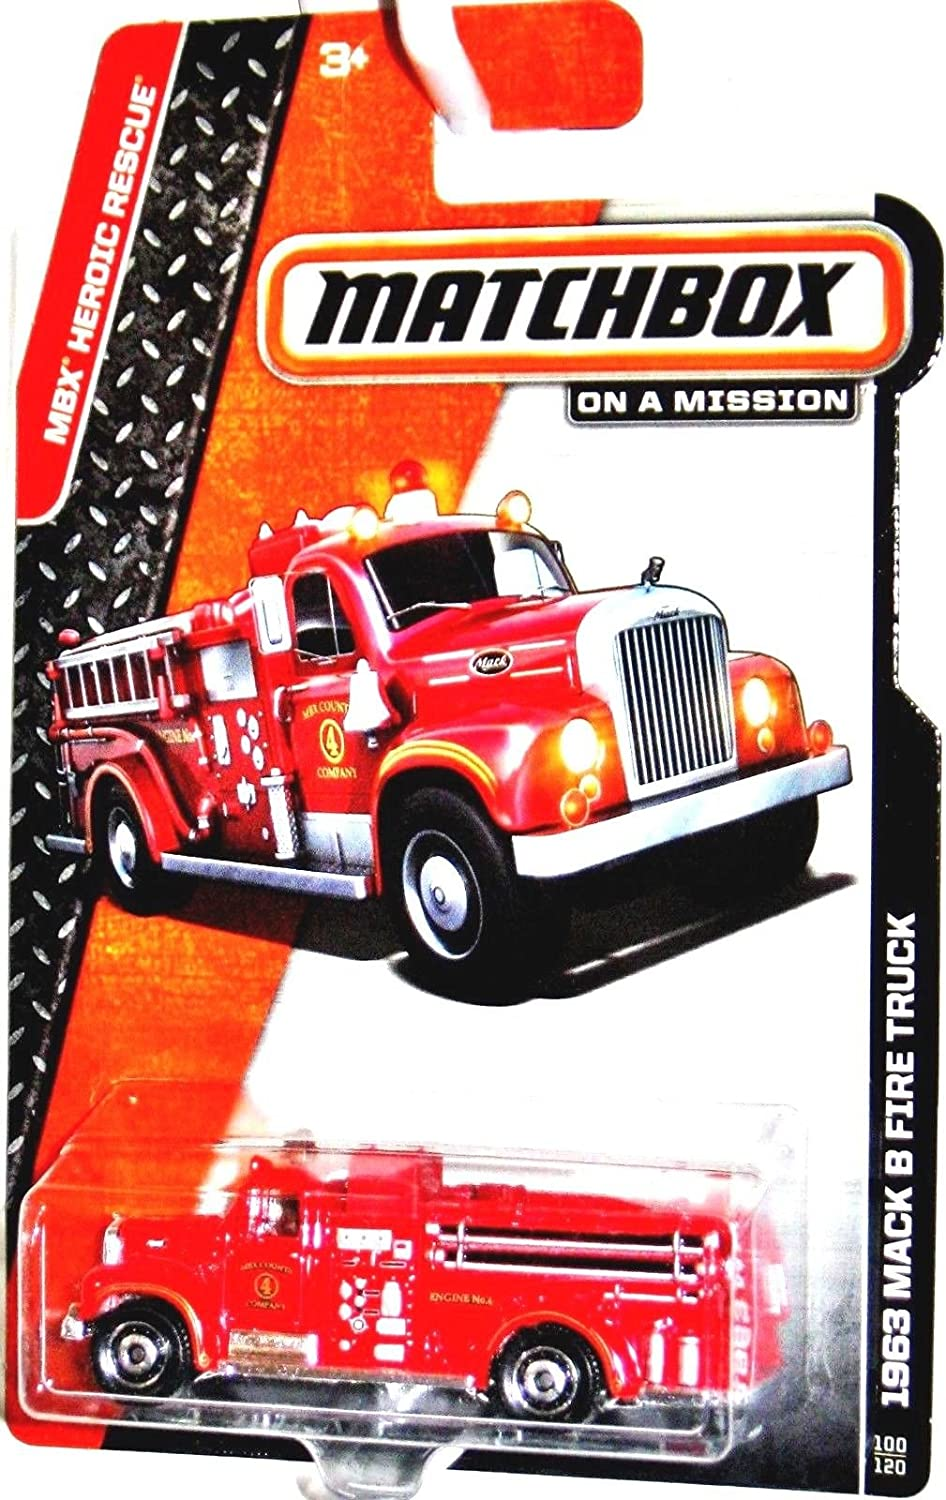 Matchbox 2014 On a Mission Mbx Heroic Rescue - 1963 Mack B Fire Truck 100/120